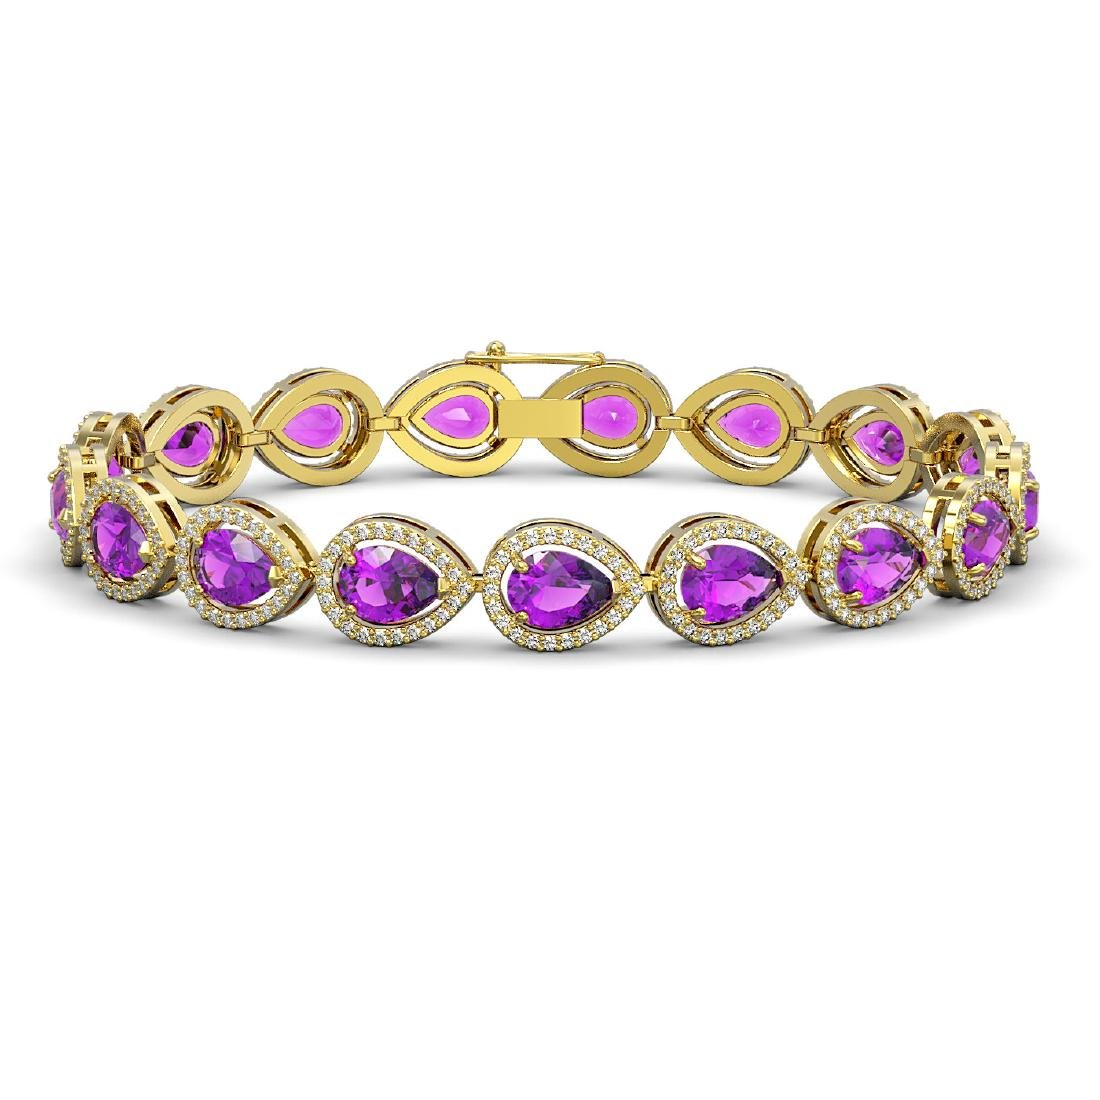 16.76 CTW Amethyst & Diamond Halo Bracelet 10K Yellow